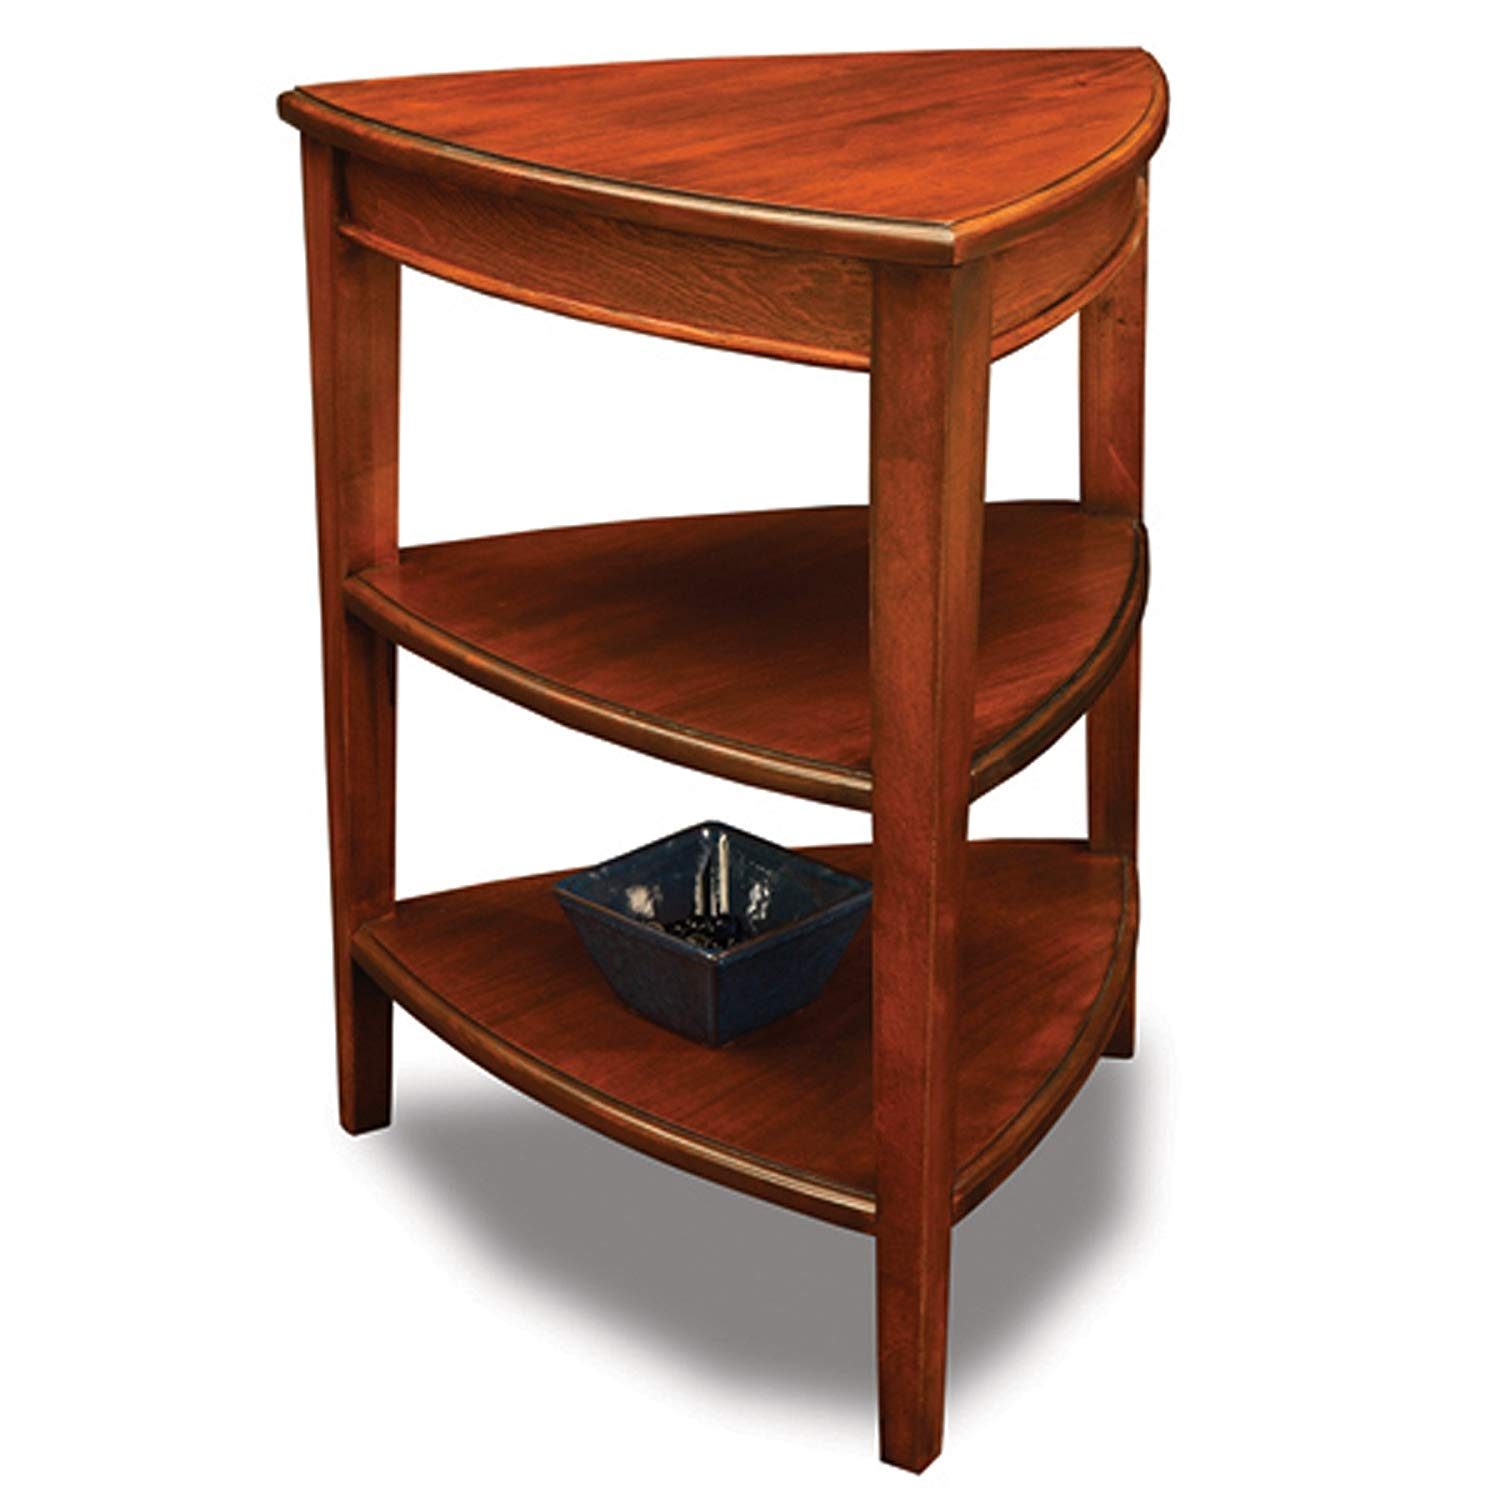 laptop storage probably terrific best triangular end table wood leick shield tier corner accent kitchen dining sofa side design babcock home furniture narrow glass console wrought